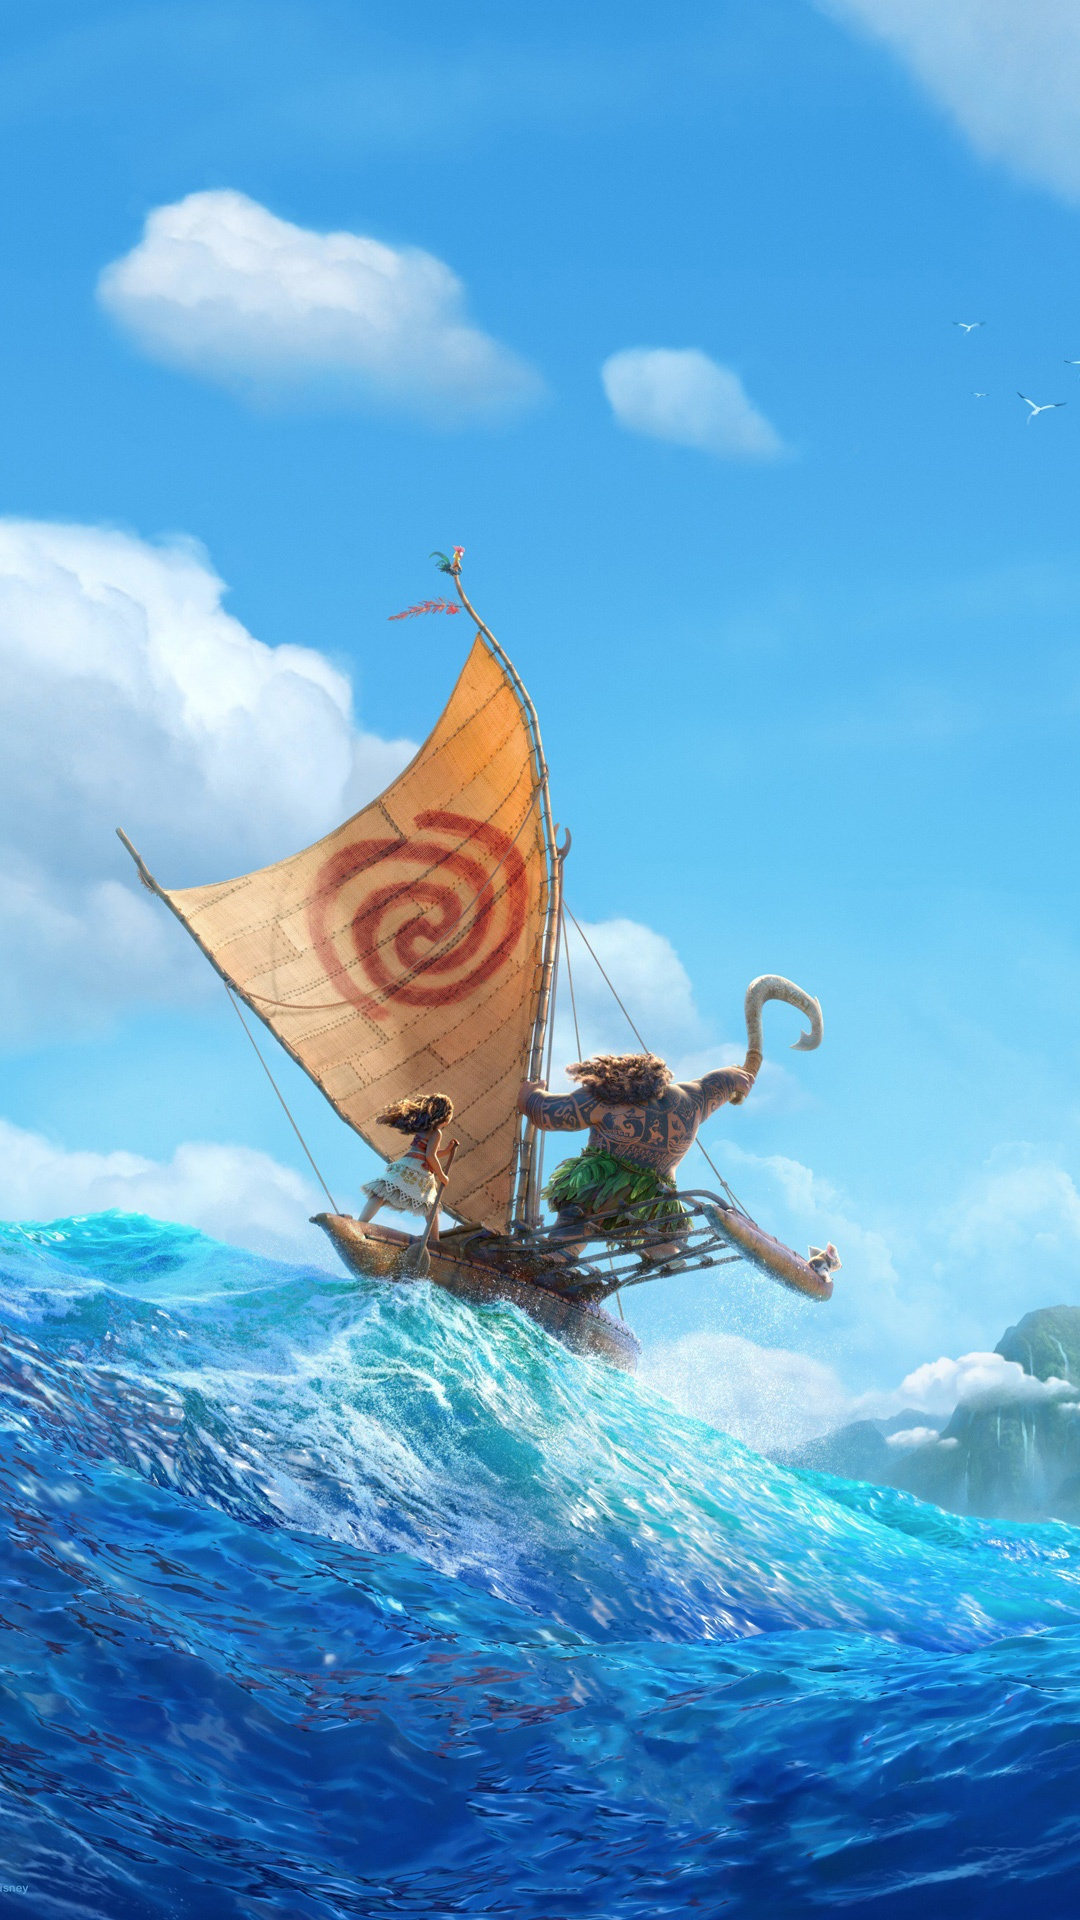 3d Animated Nature Wallpaper Free Download Disney Moana 2016 Animation Wallpapers In Jpg Format For